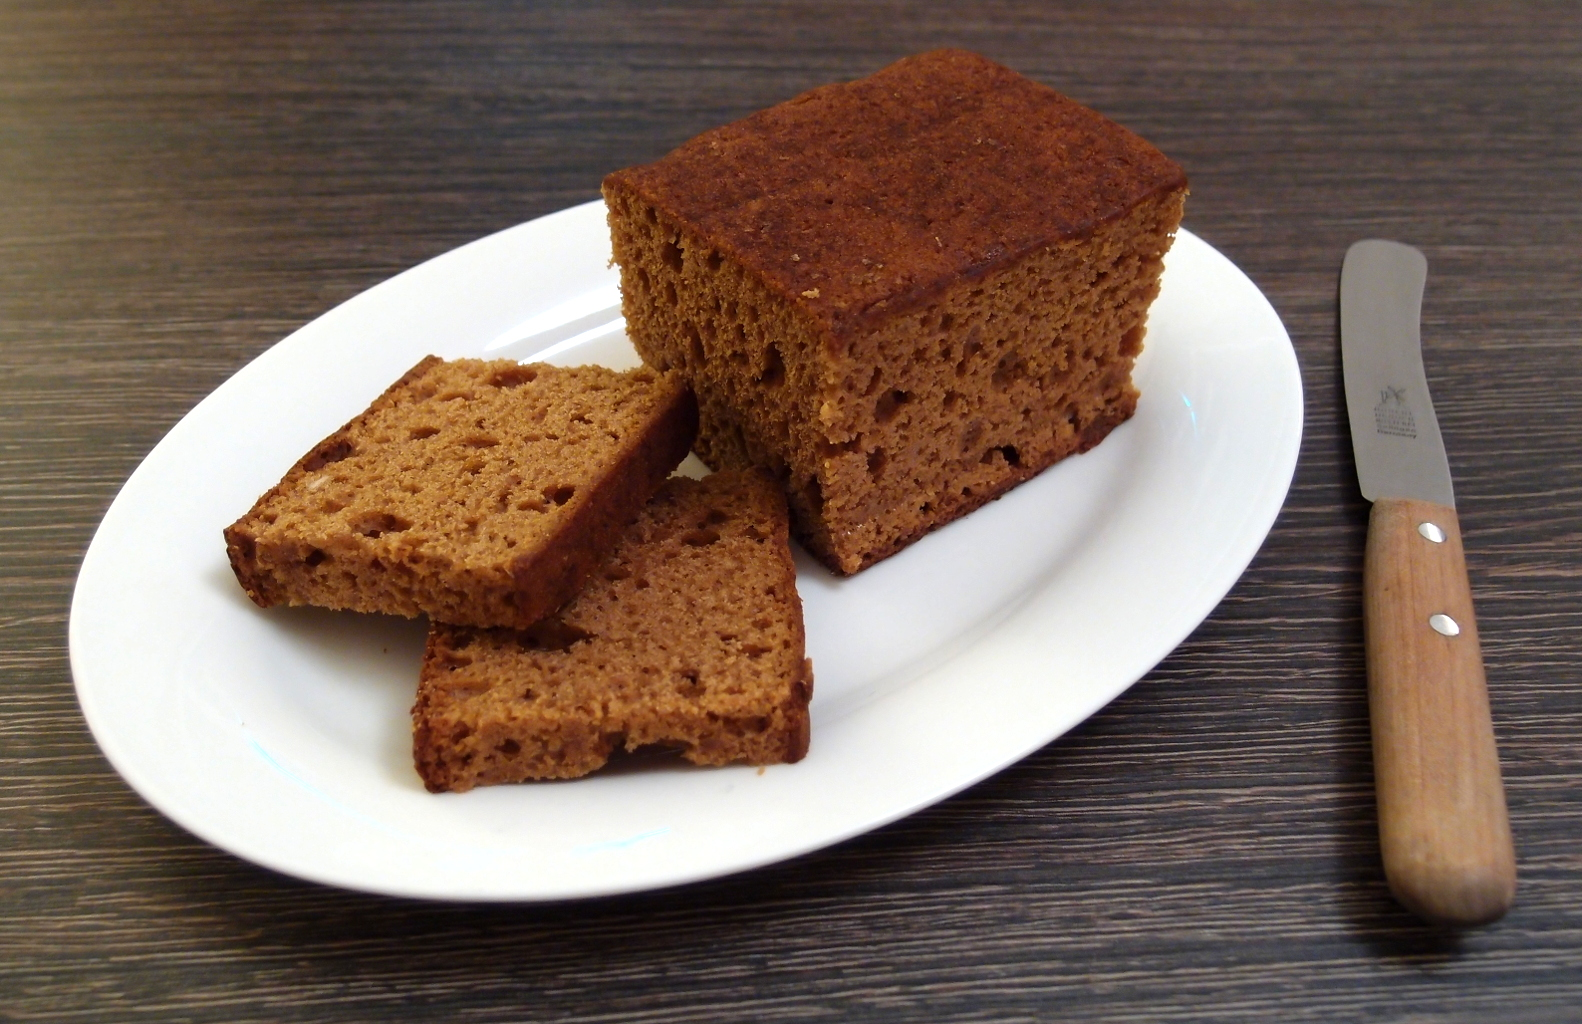 Datei:Dutch style gingerbread loaf, cut open.jpg – Wikipedia